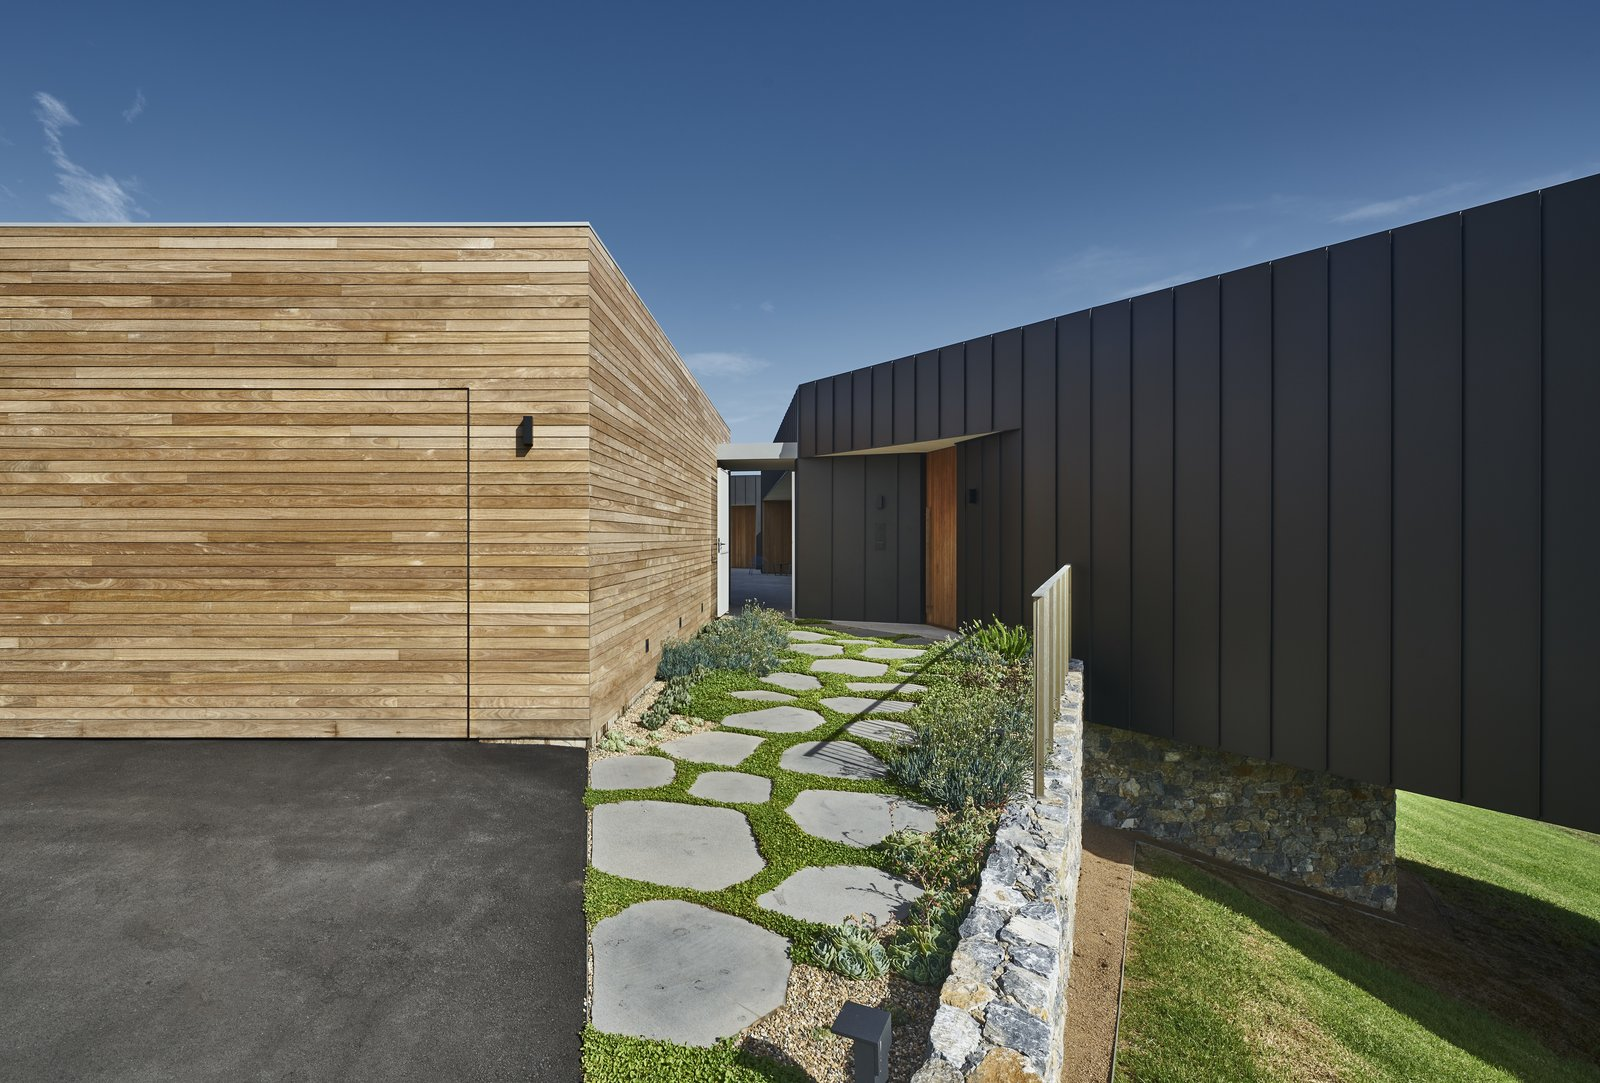 Garage and Detached Garage A wood-clad garage sits adjacent to the home.  Best Garage Photos from An Australian Abode Fuses Structure With Scenery